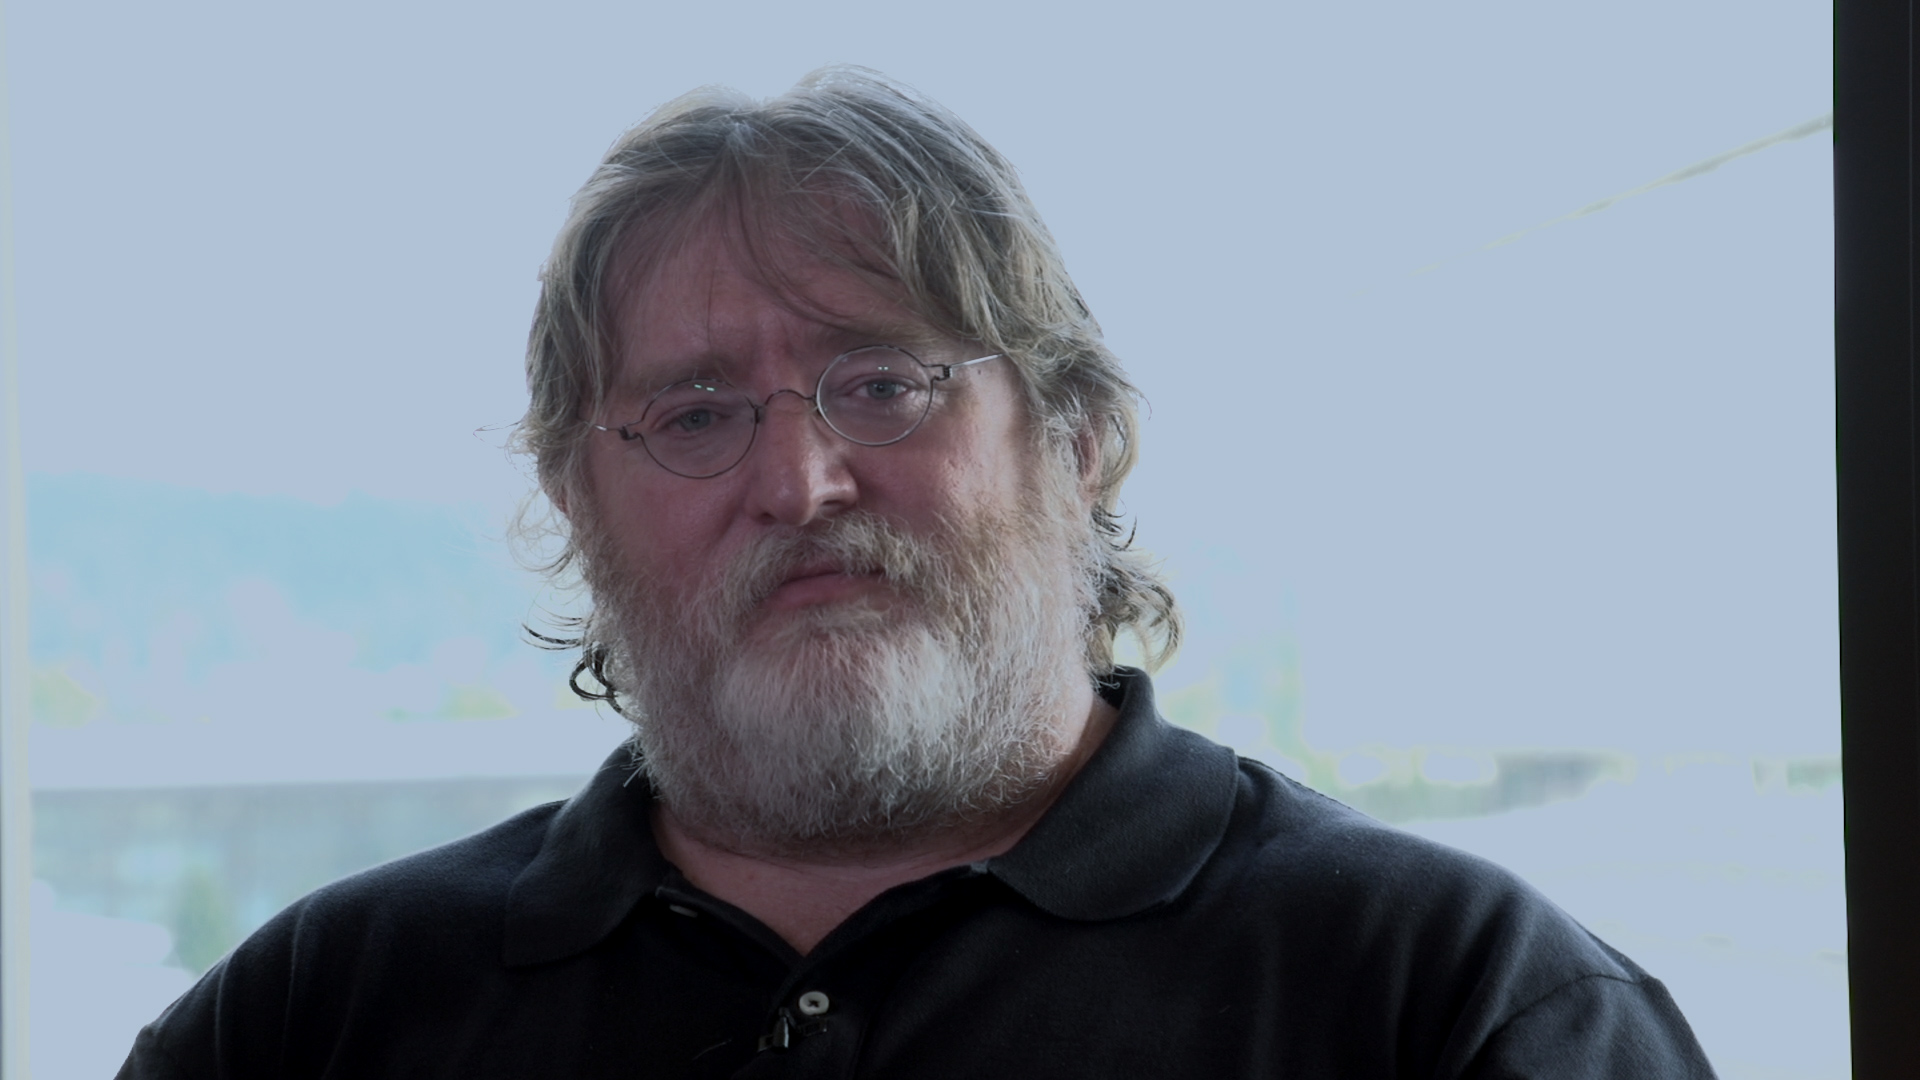 Gabe Newell Announces That Valve Is Designing Their Own VR Games